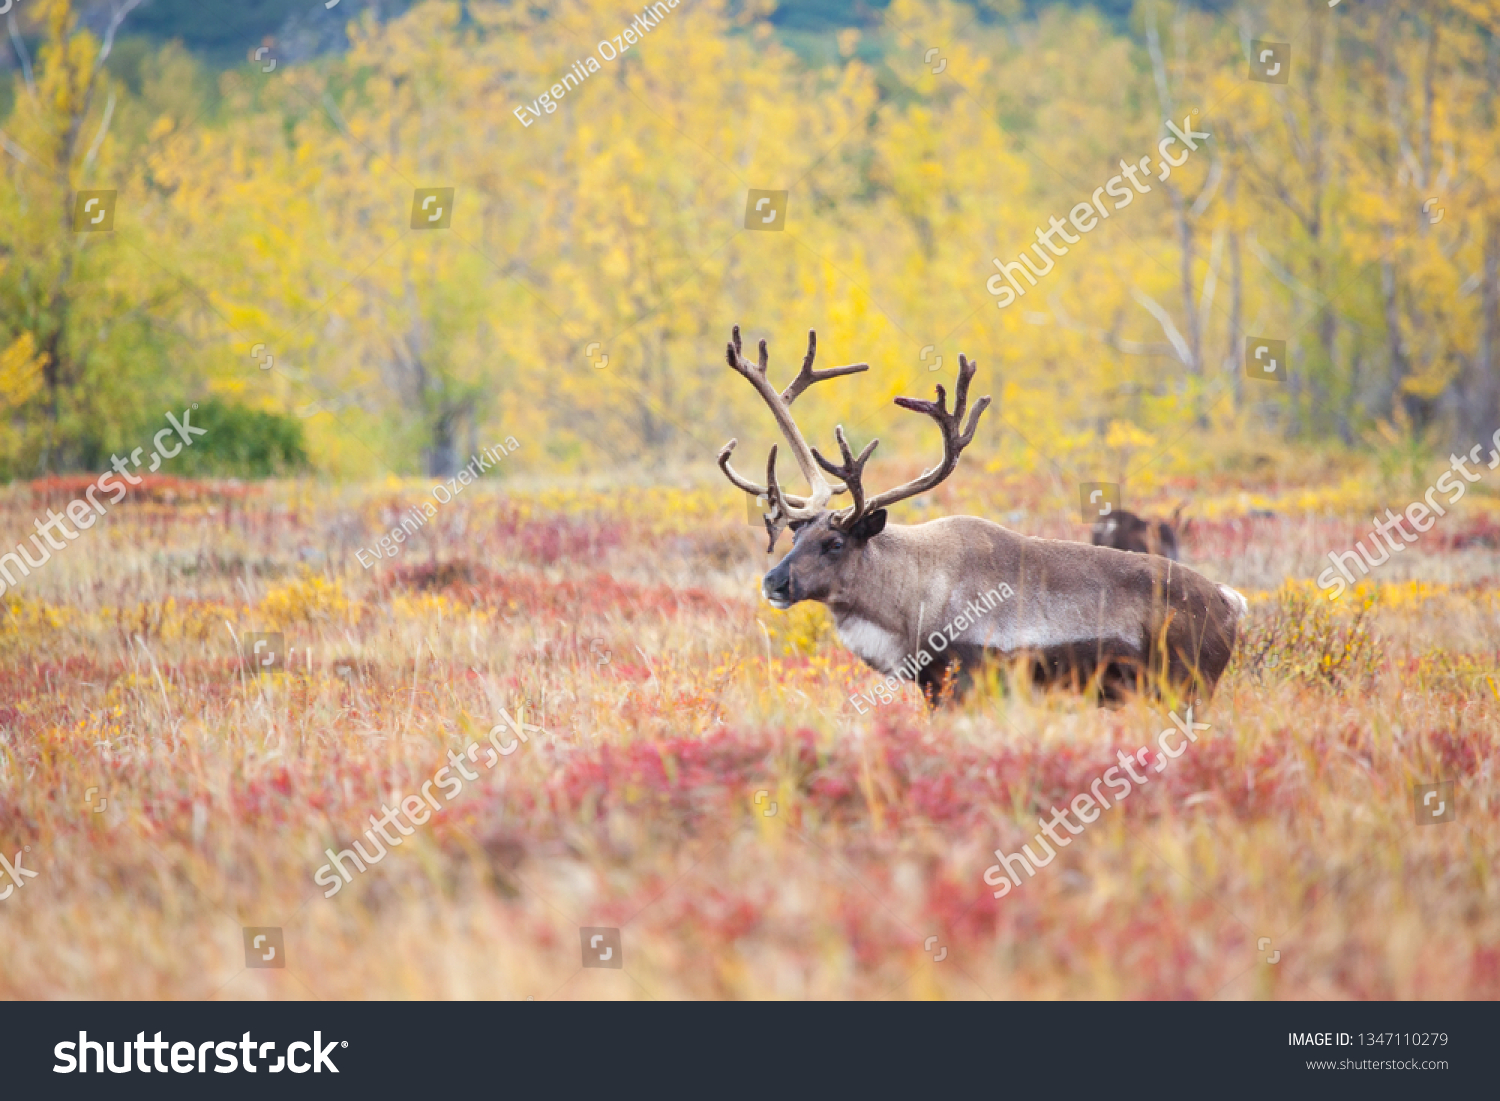 stock-photo-a-reindeer-on-the-background